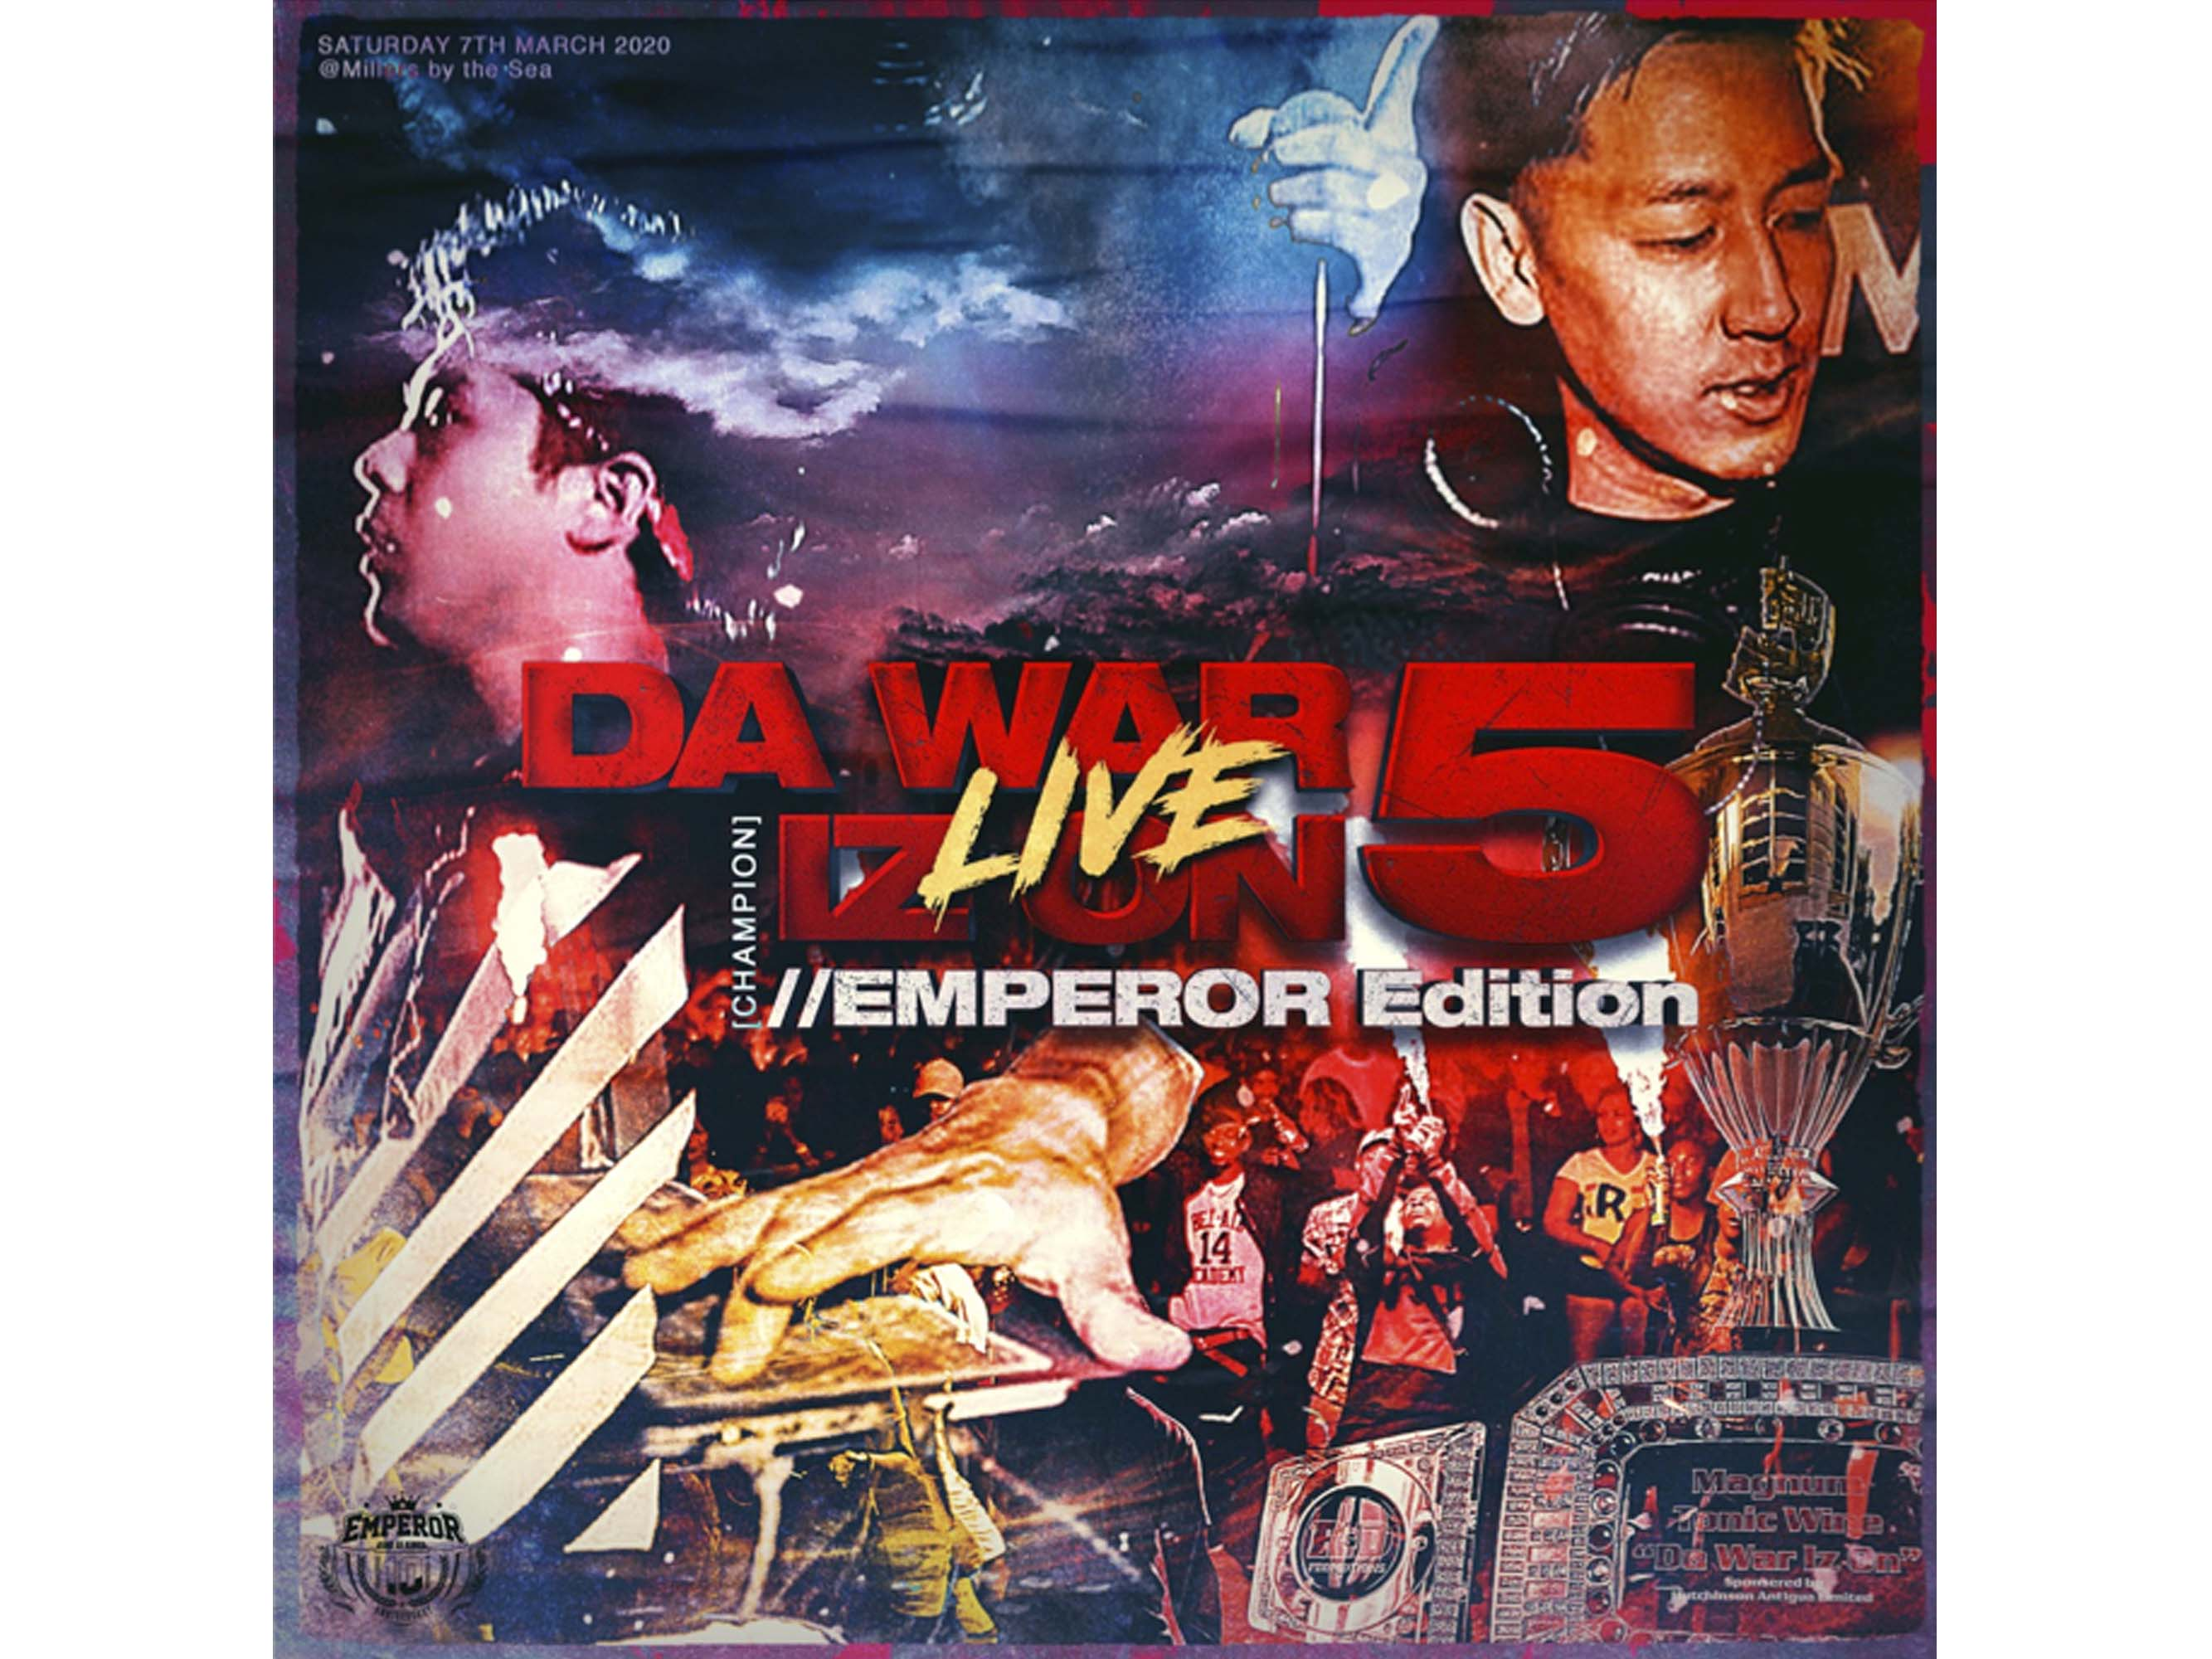 DA WAR IZ ON 5 LIVE ・ EMPEROR EDITION - EMPEROR